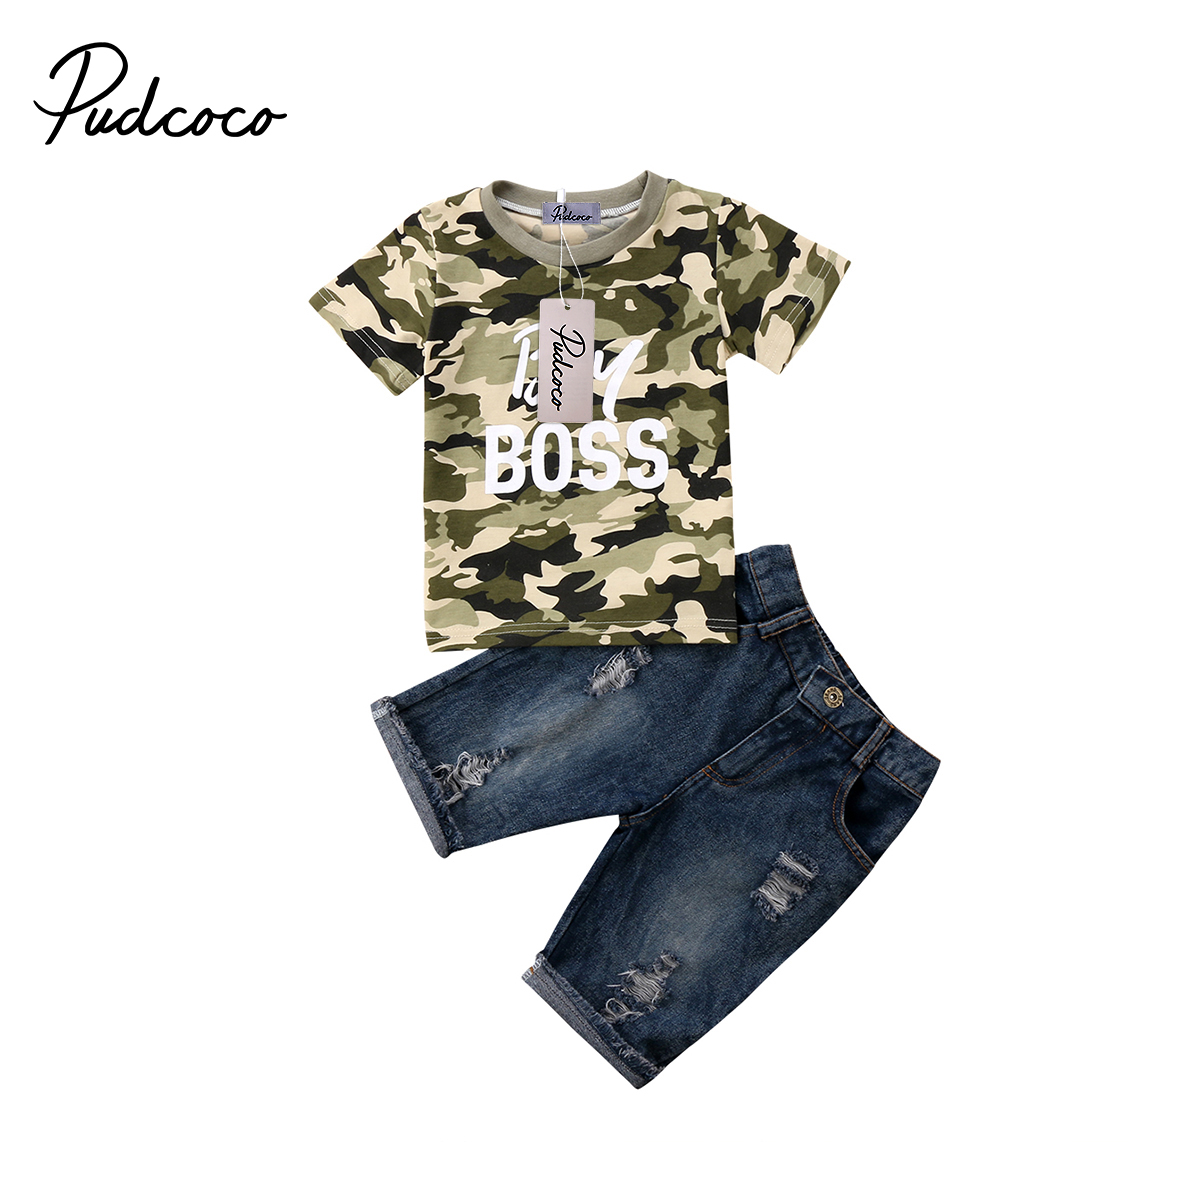 2018 Brand New Toddler Infnat Kid Baby Boy Clothes T Shirt Camo Tops Denim Pants Outfits 2Pcs Set Children Summer Clothing 1-6T